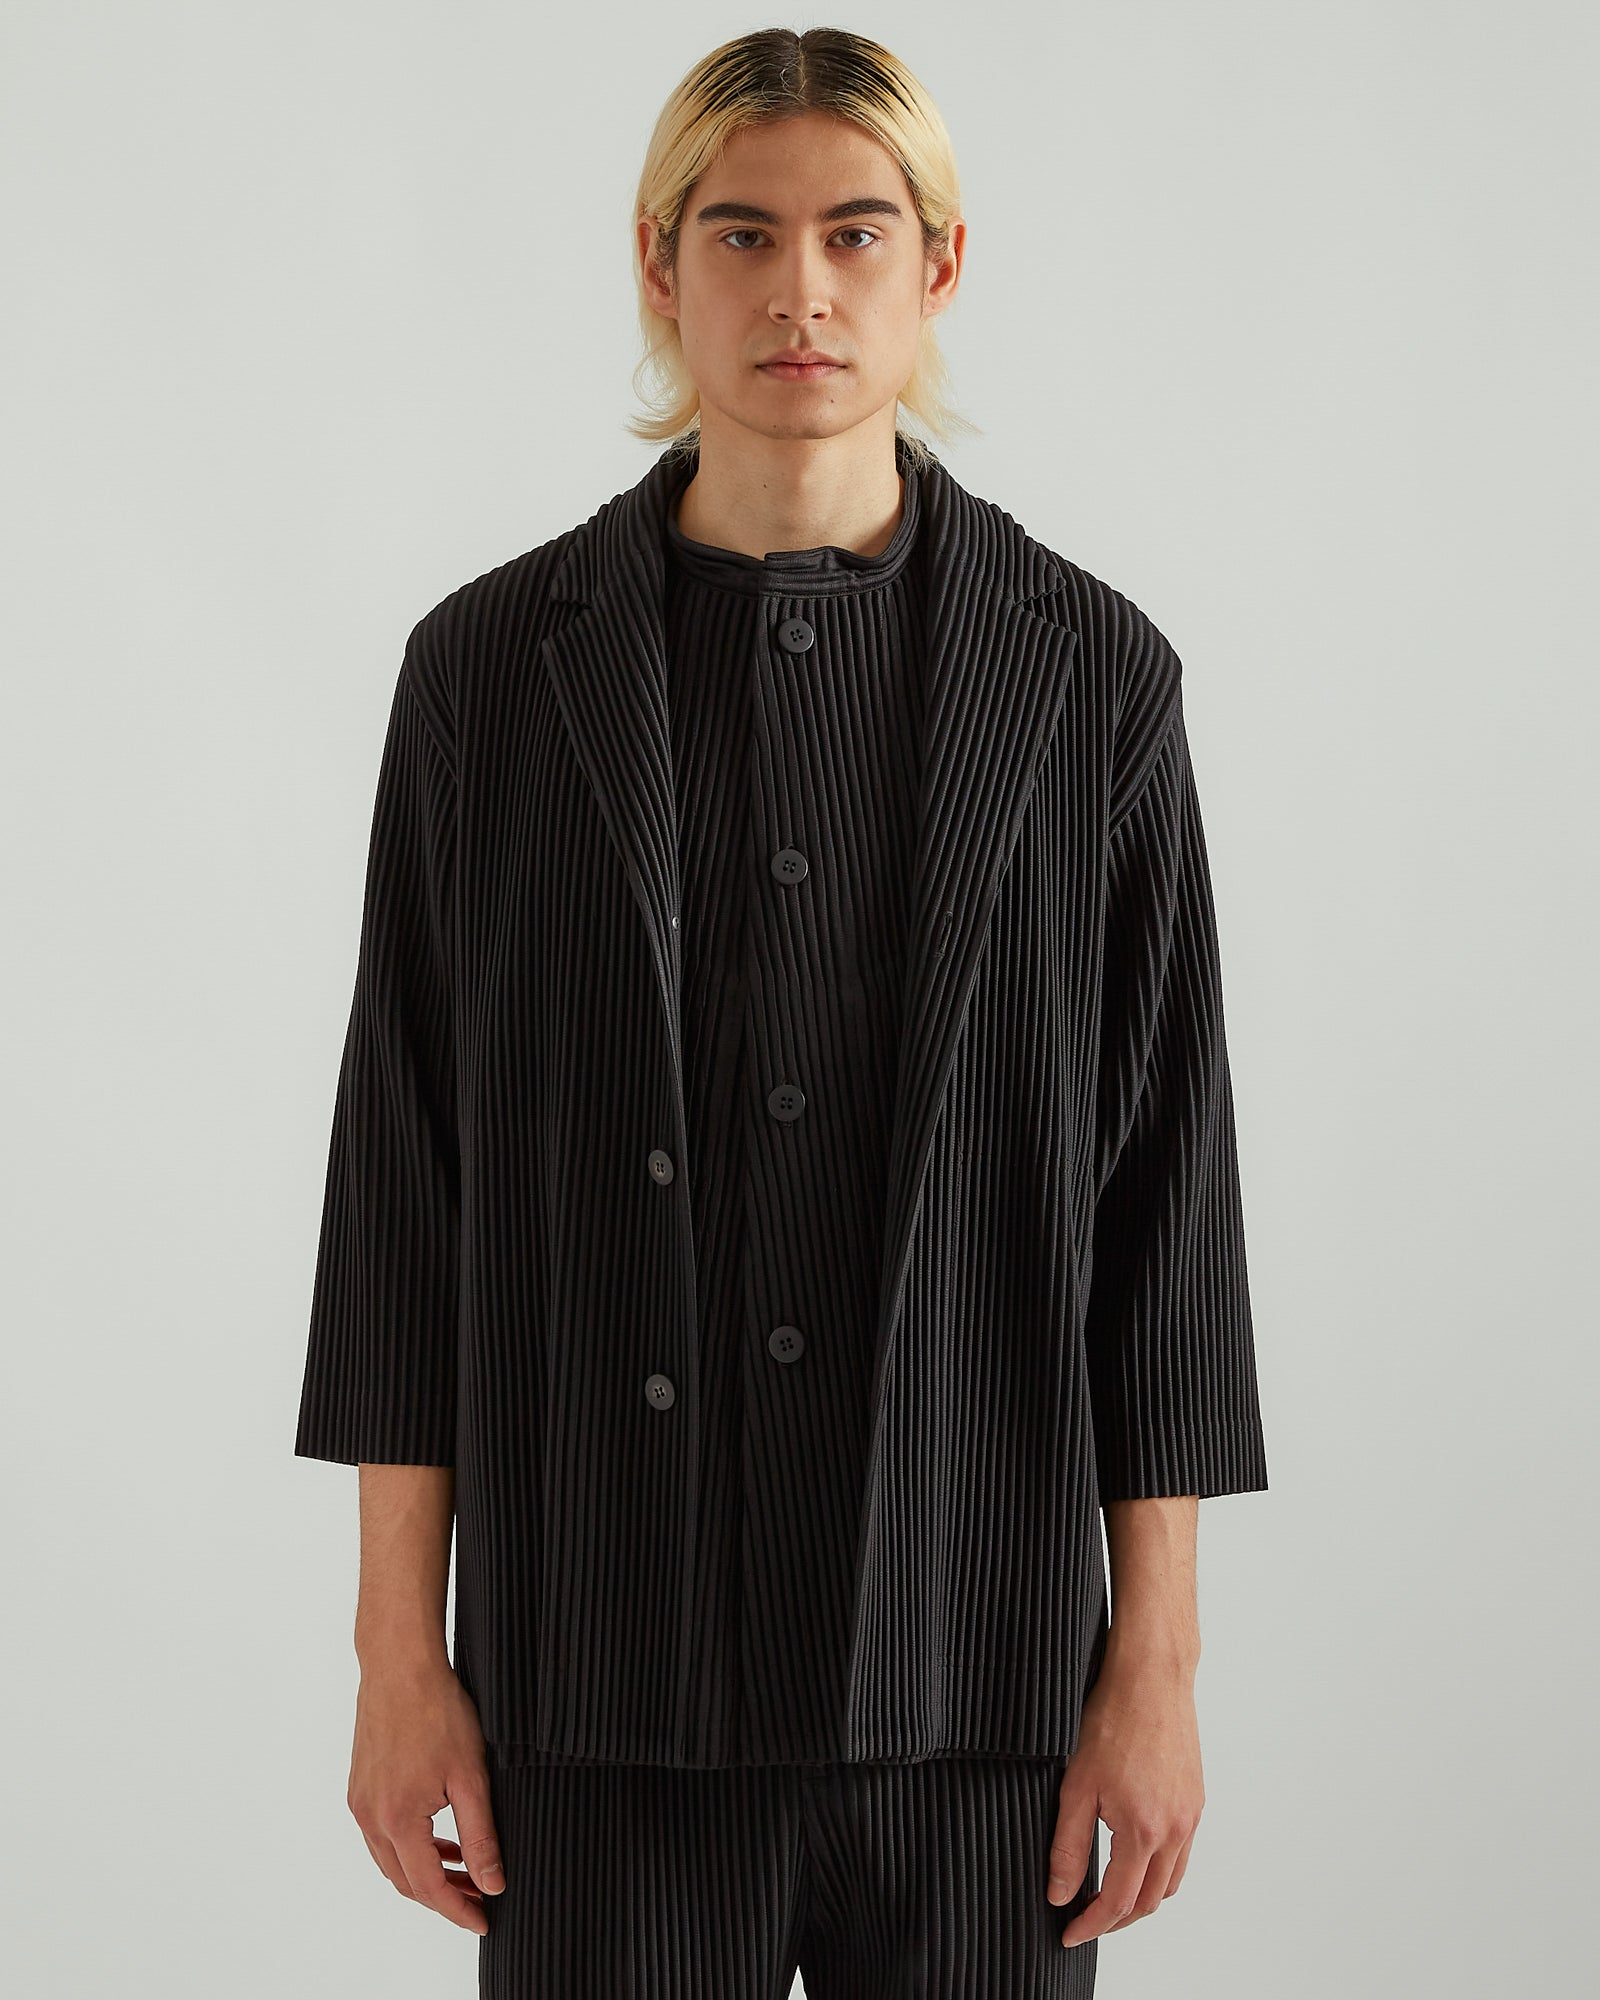 Lightweight Jacket in Black